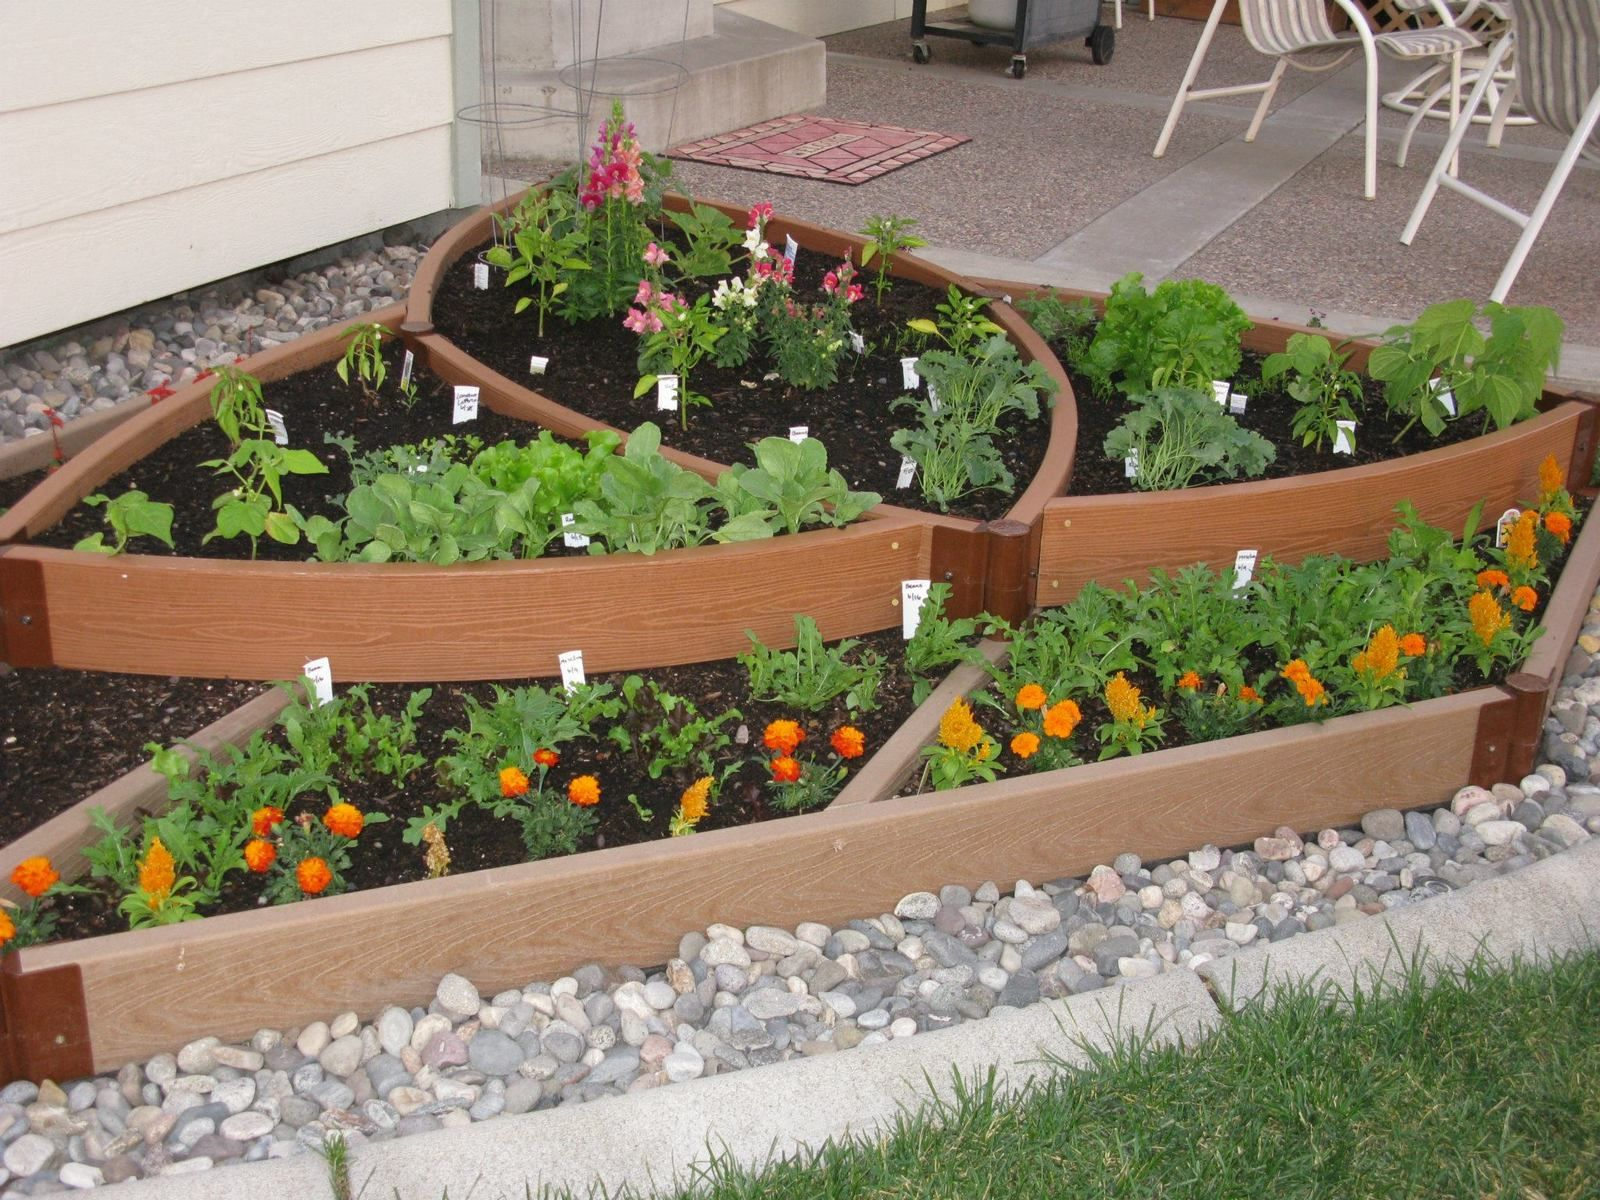 Raised garden raised garden bed kits for sale and buy for Raised vegetable garden bed designs